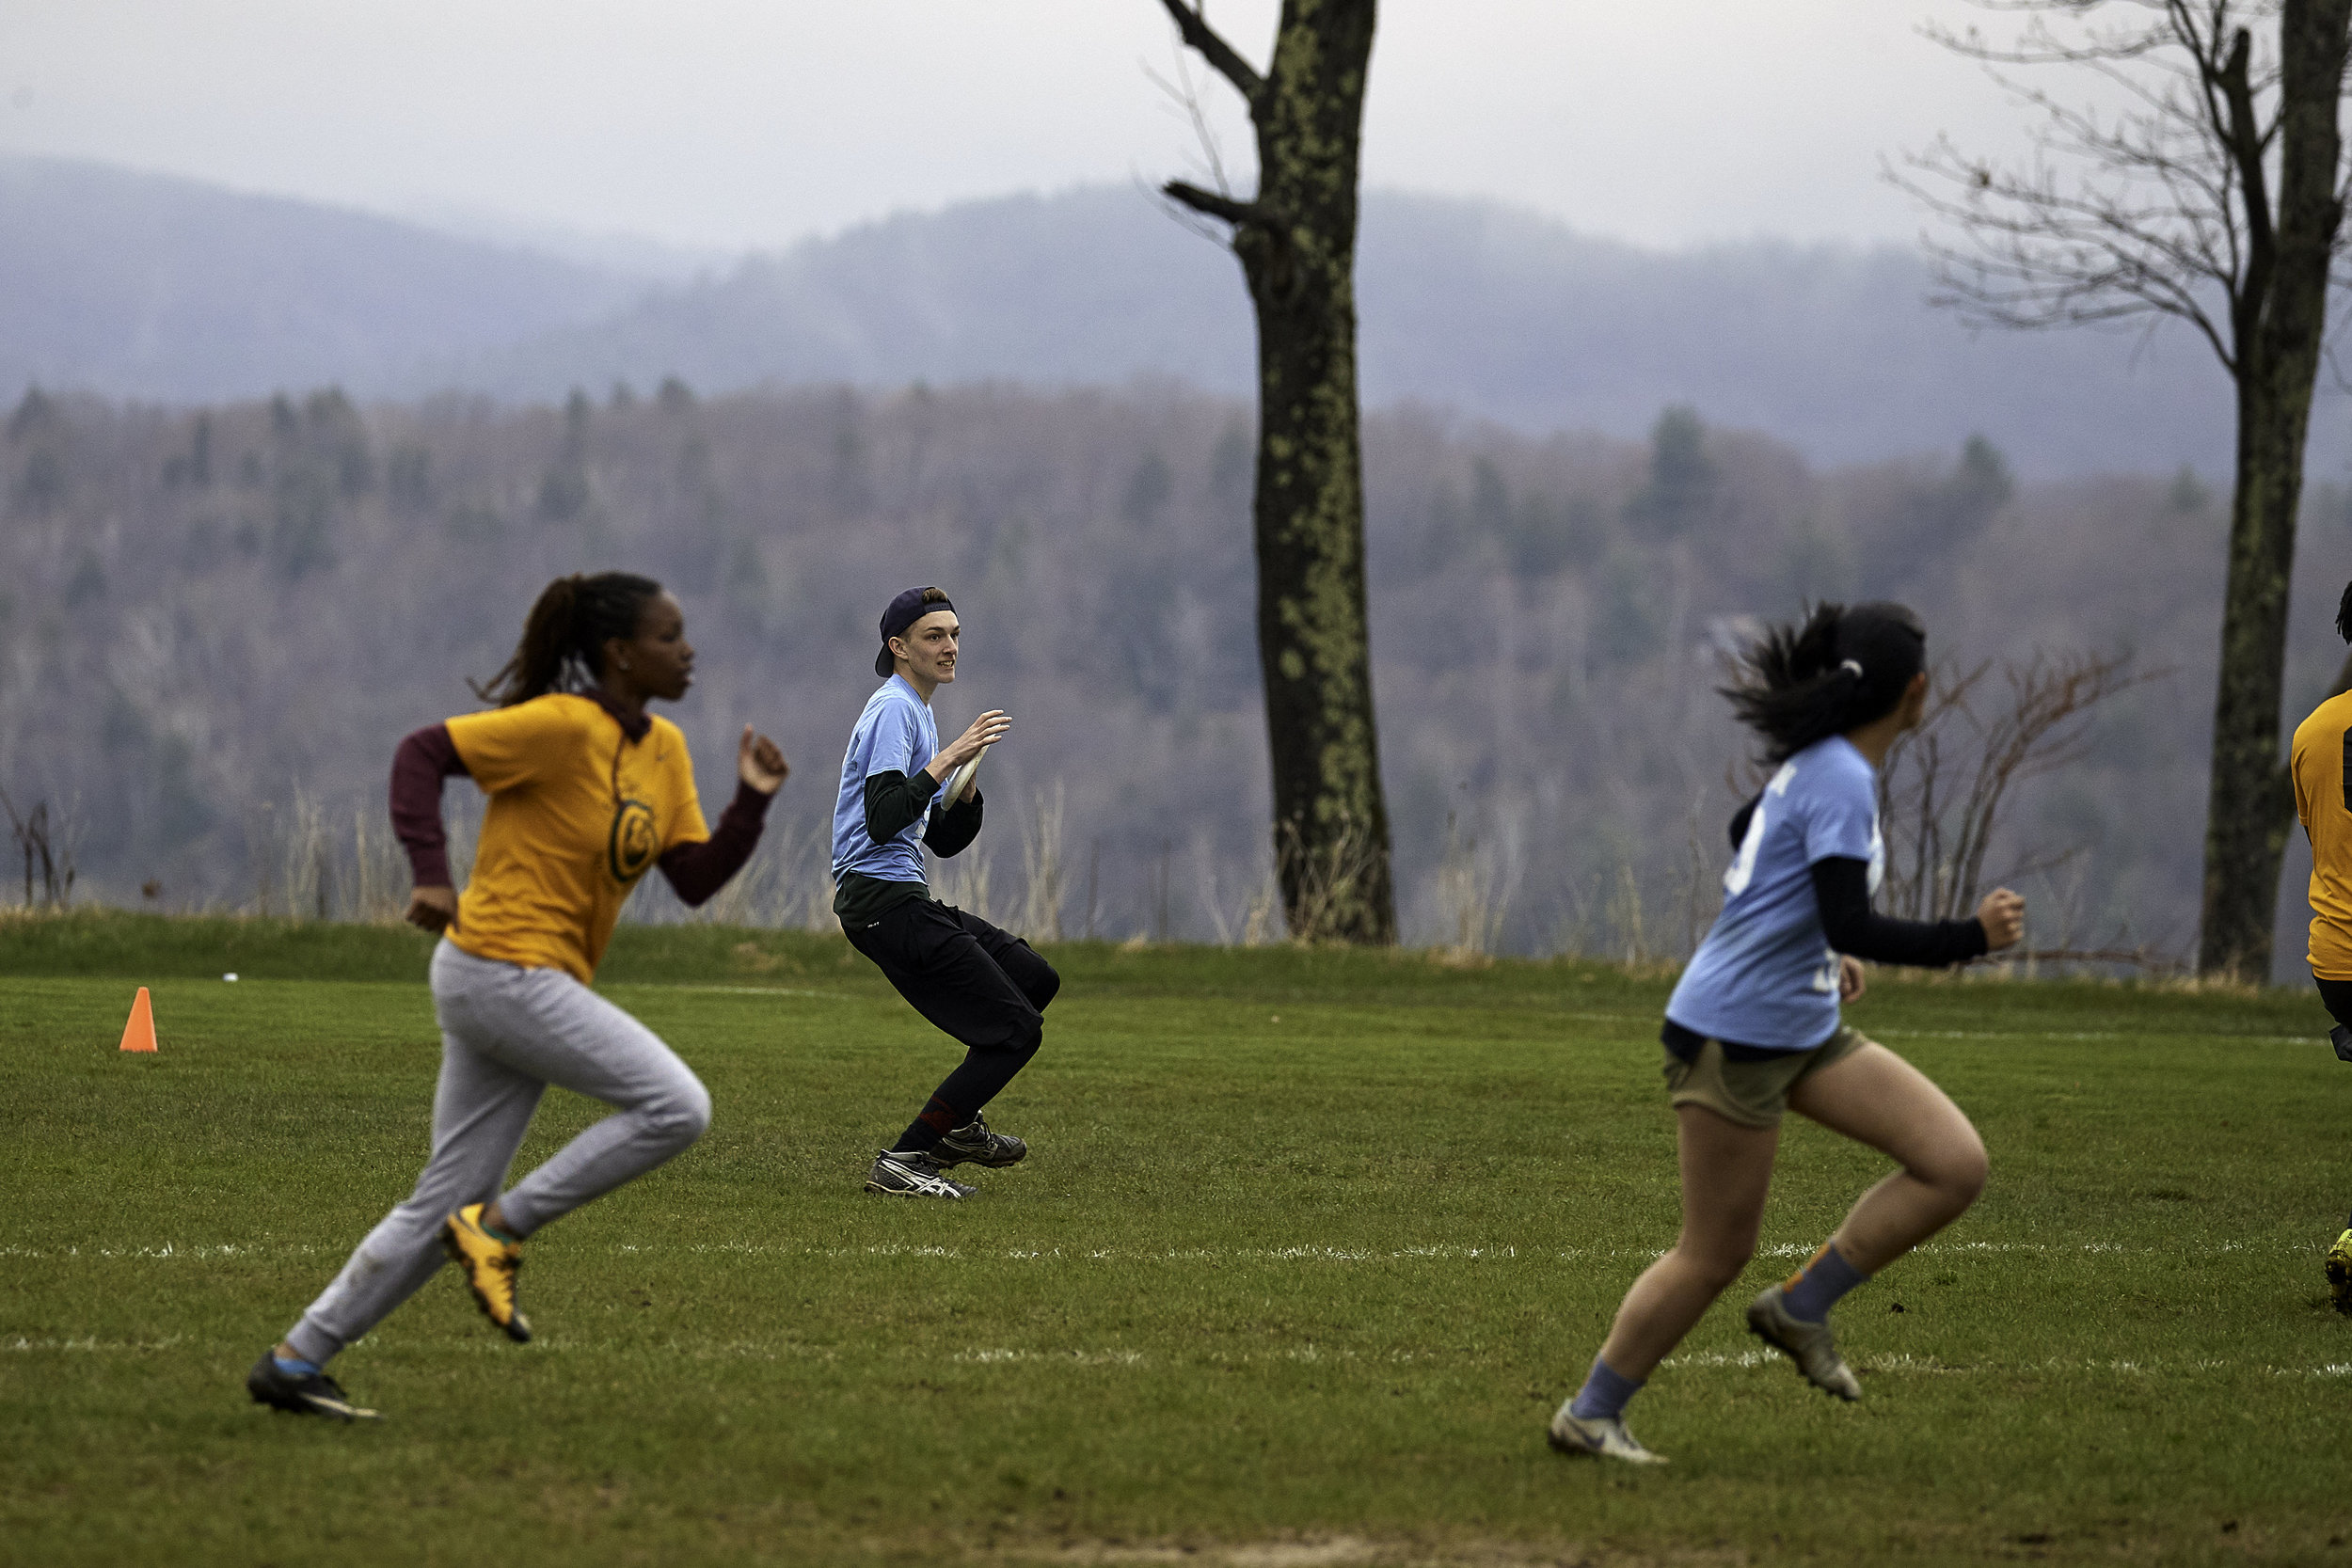 Ultimate Frisbee vs. Eagle Hill School - May 3, 2019 - 188351.jpg